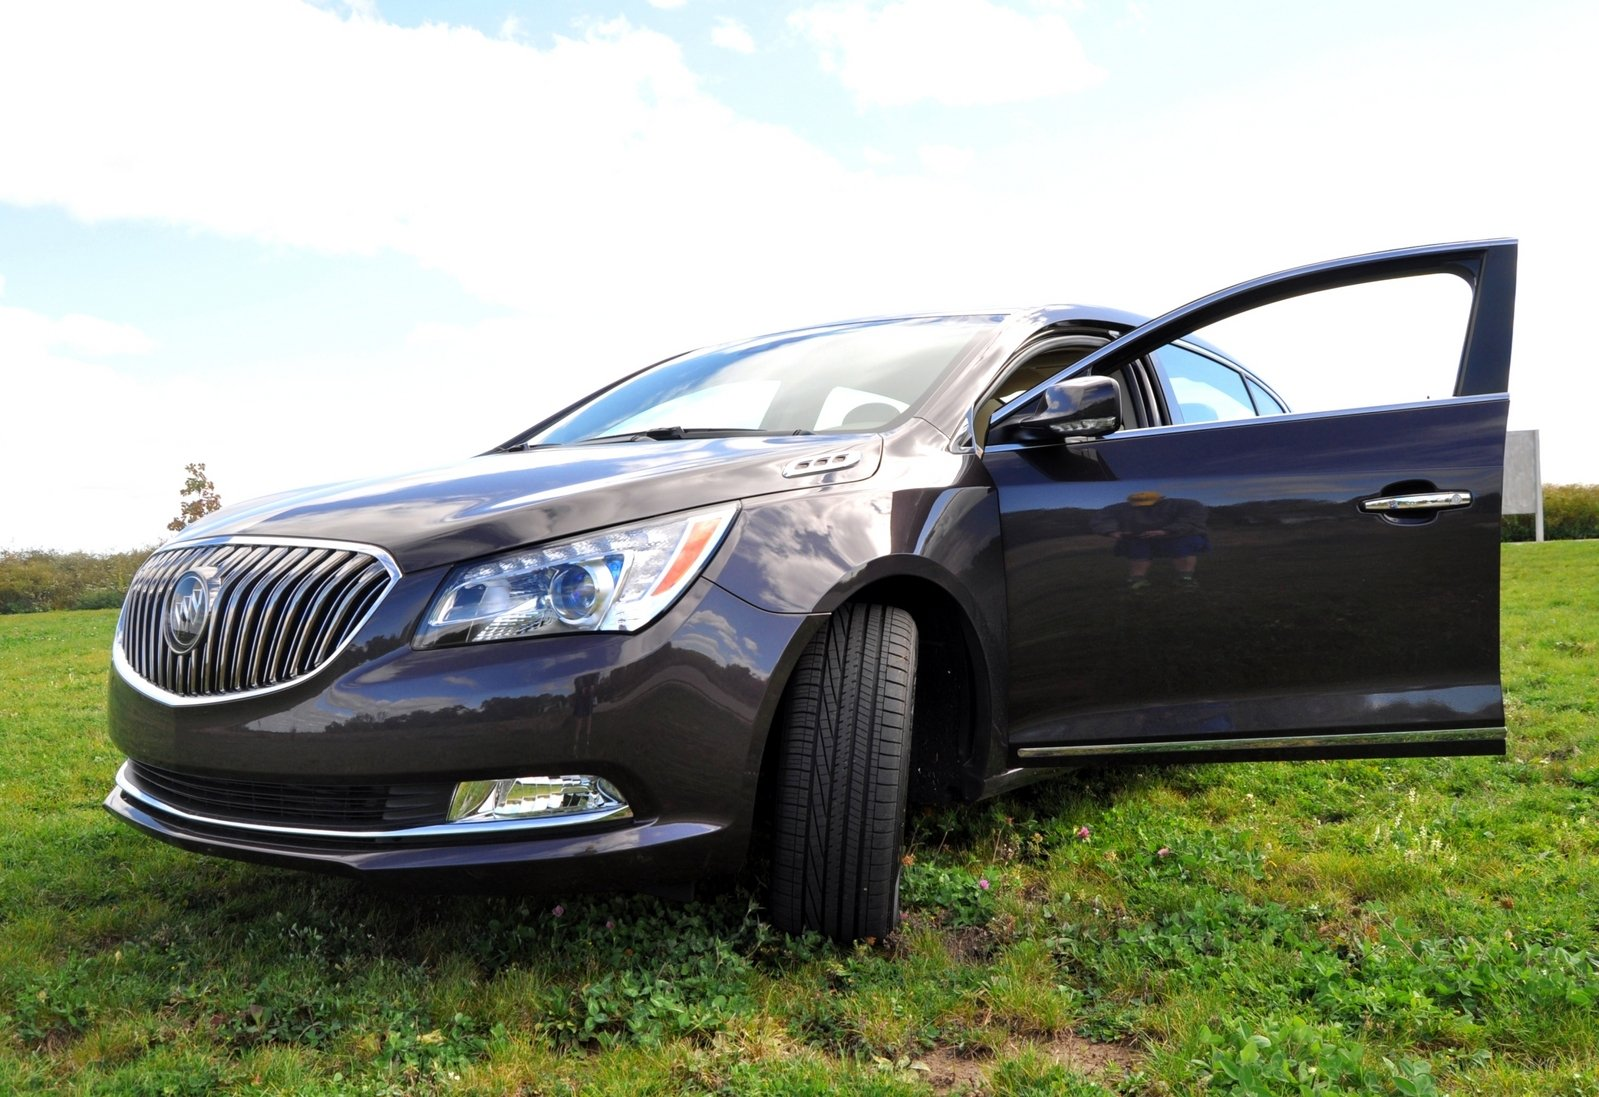 2014 buick lacrosse driven picture 528784 car review top speed. Cars Review. Best American Auto & Cars Review